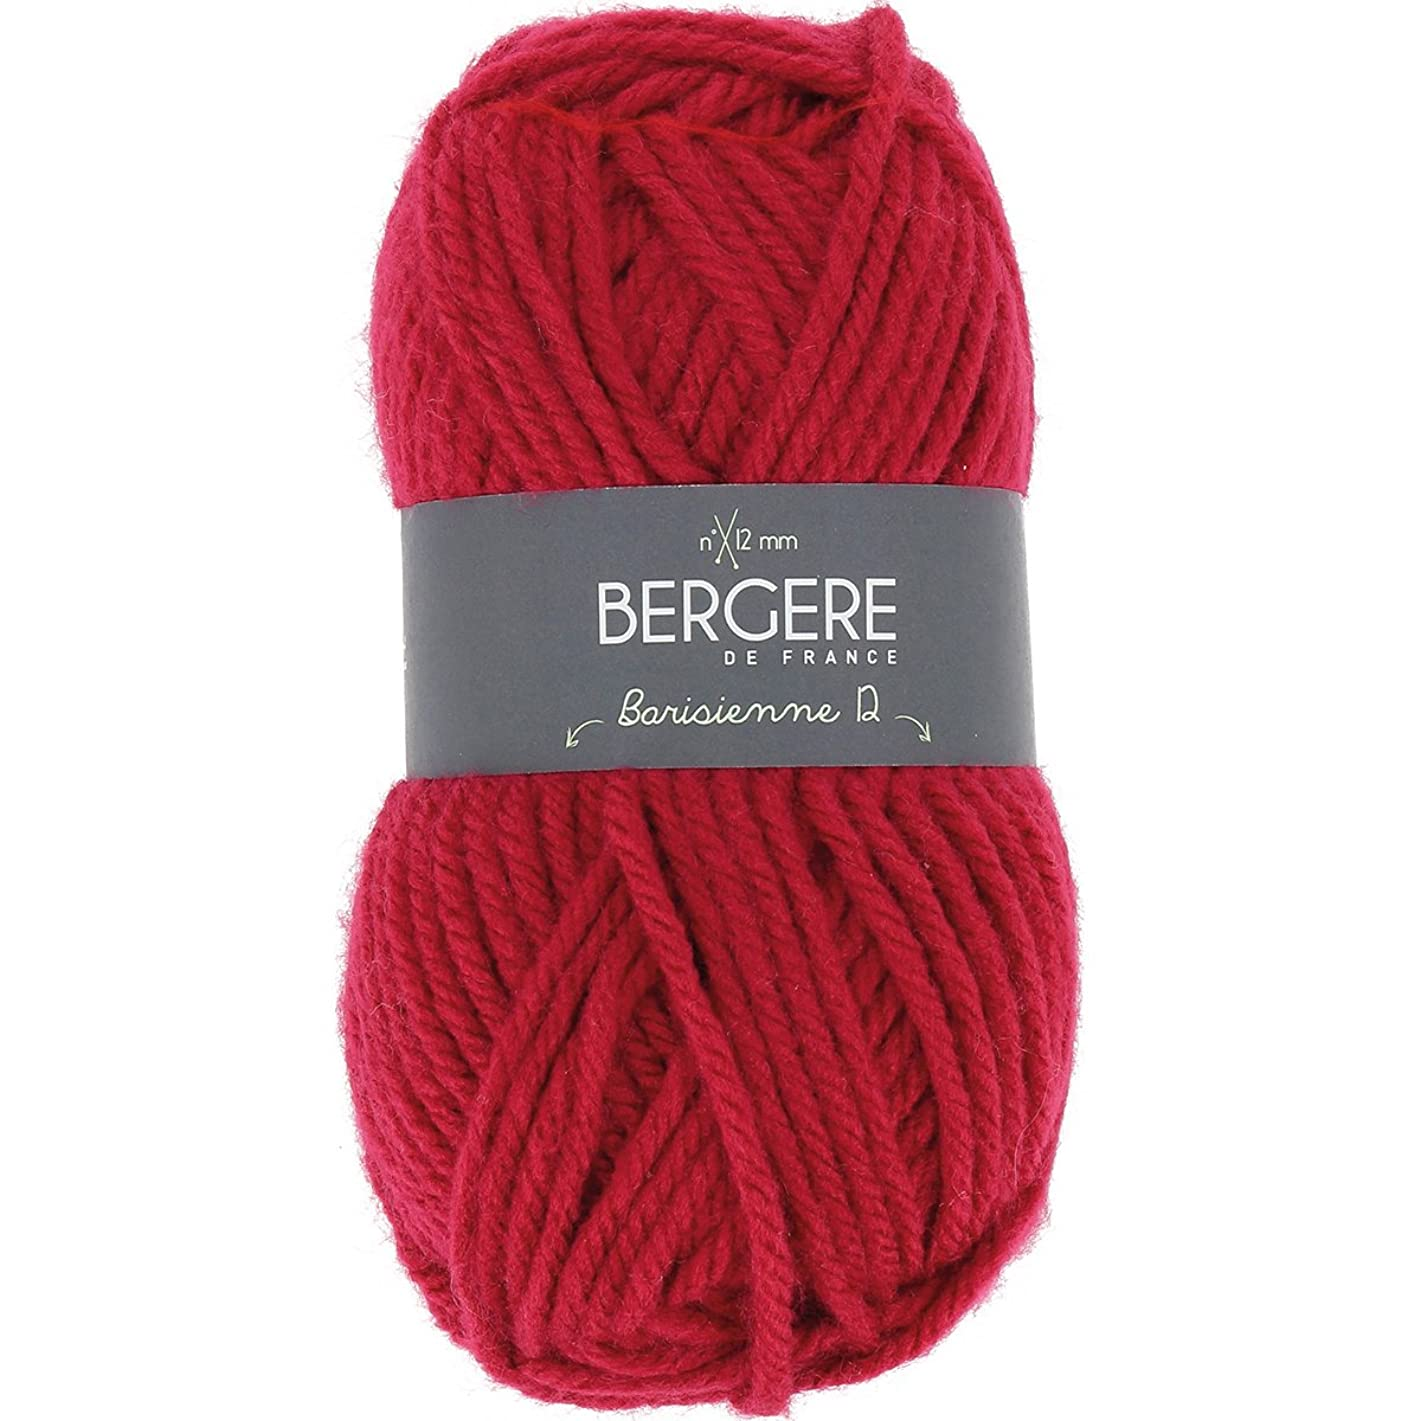 Bergere de France 10016 Barisienne 12 Yarn-Birmanie